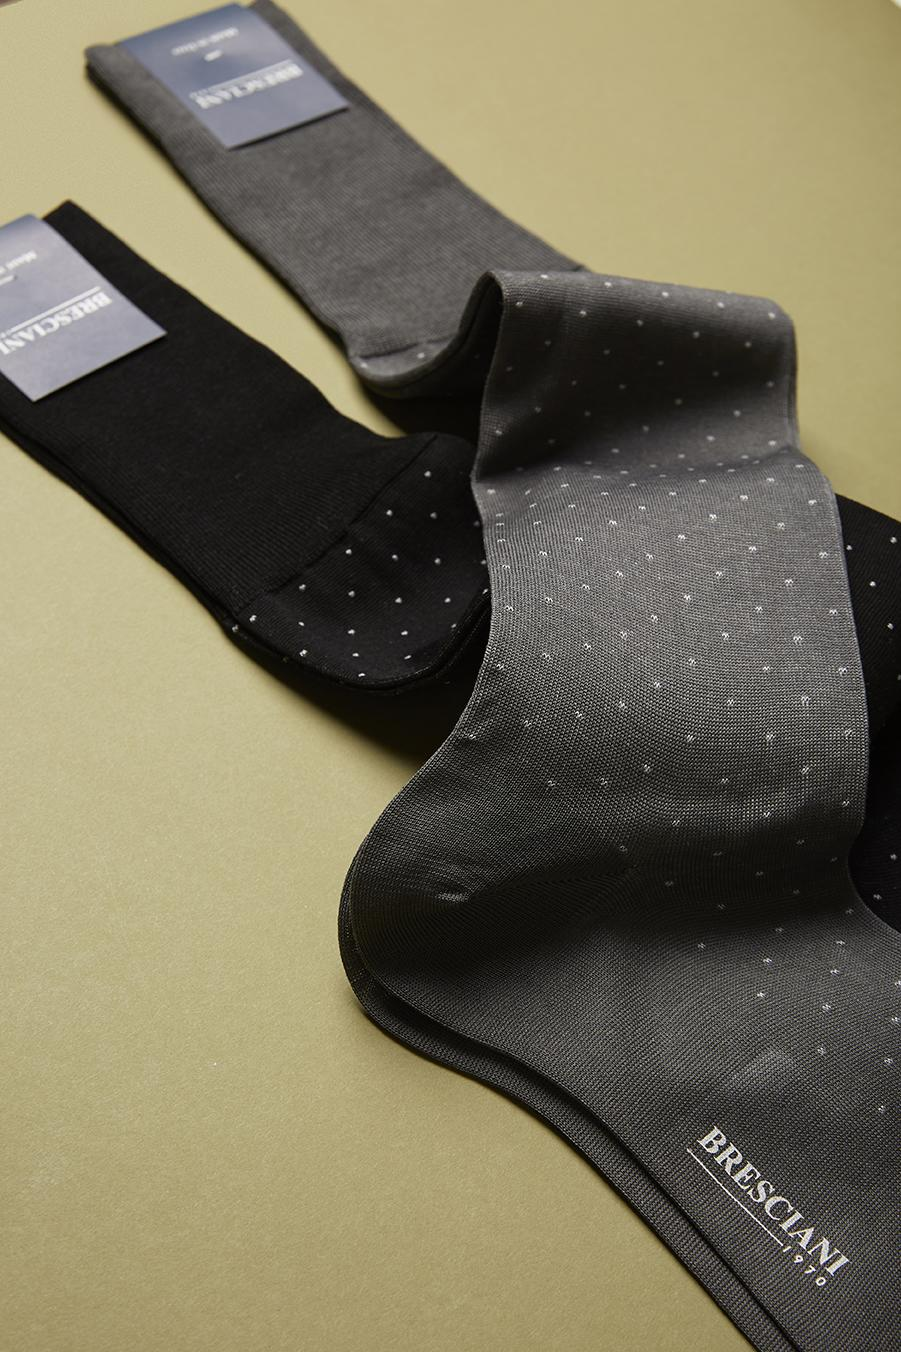 Bresciani-over-the-calf-cotton-socks-in-Microdot pattern Grey 3